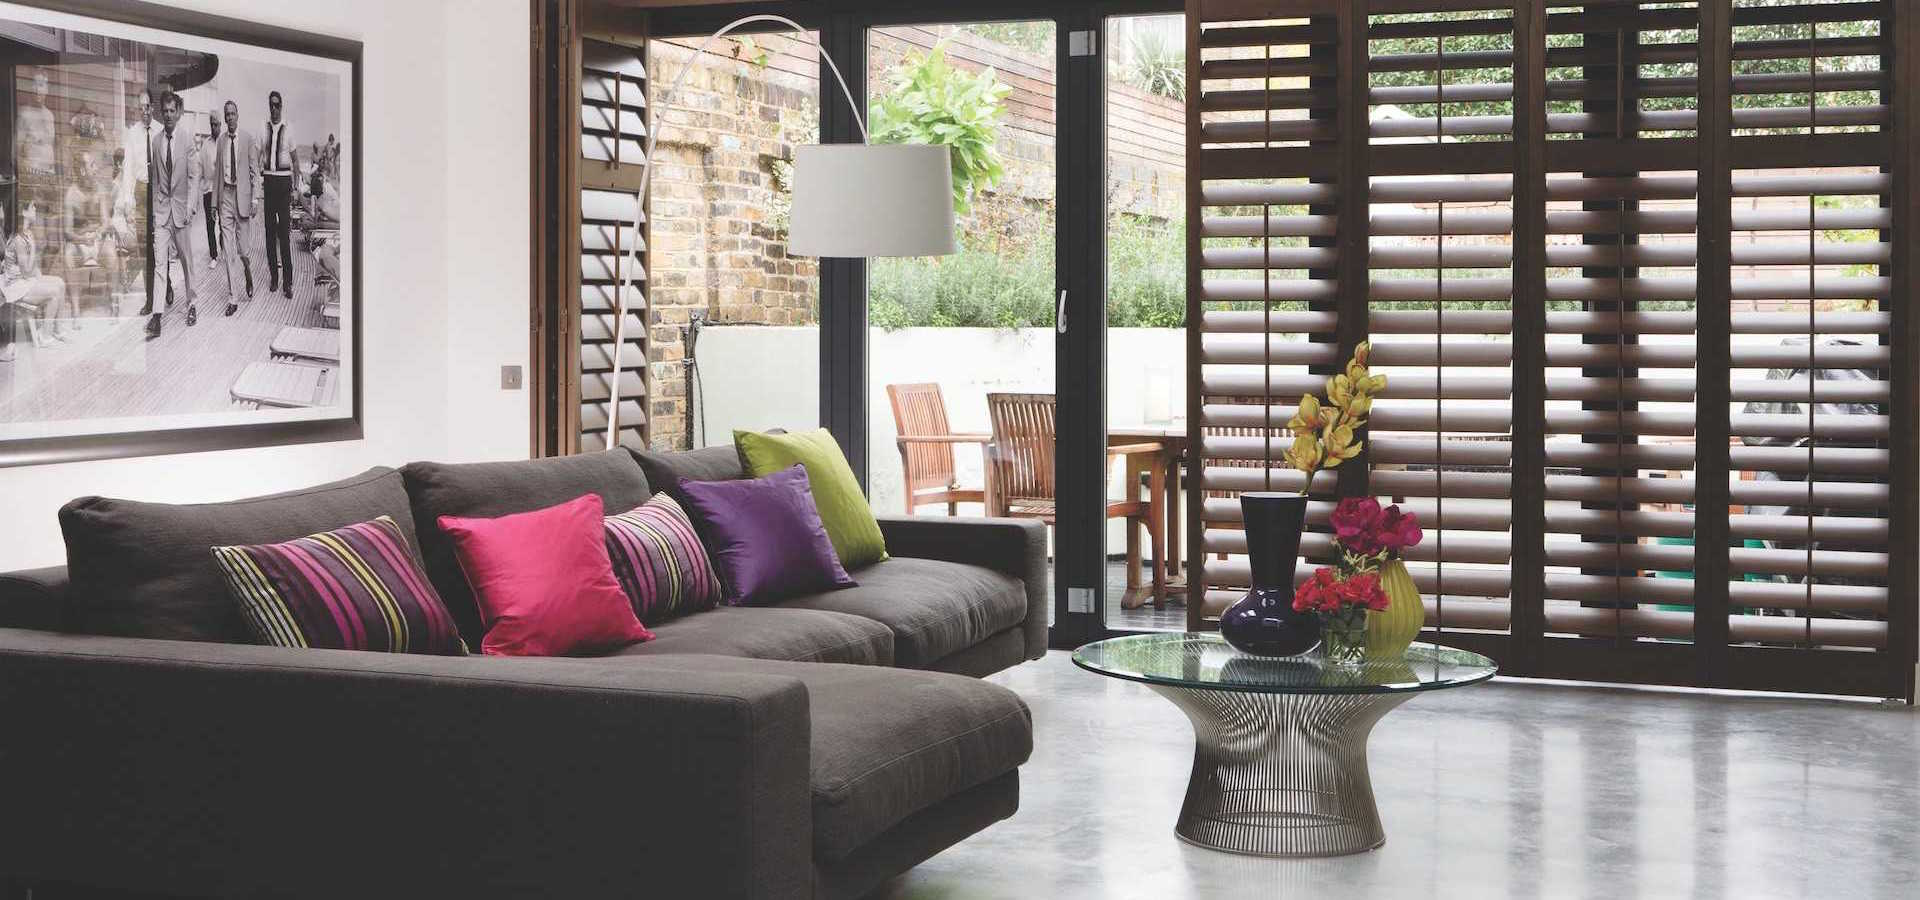 7 Ways To Keep Your Home Cool This Summer